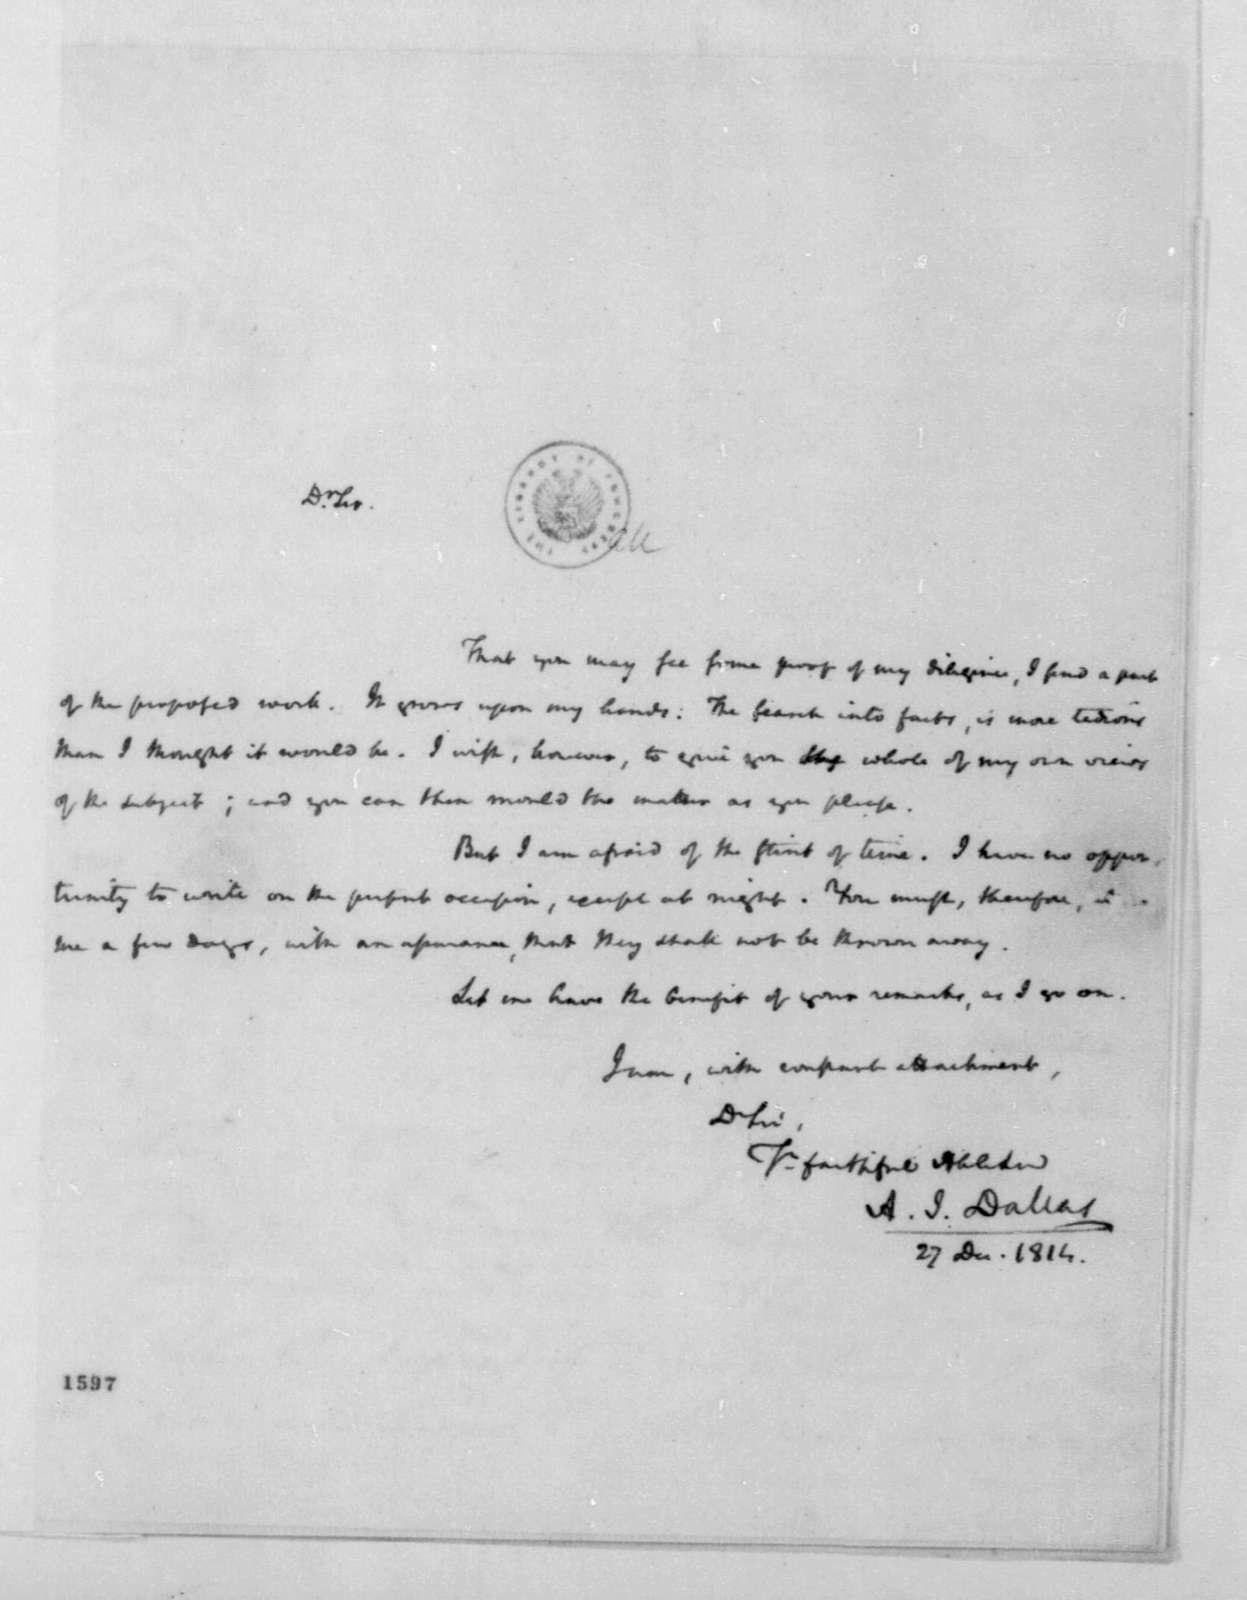 A. J. Dallas to James Madison, December 7, 1814.